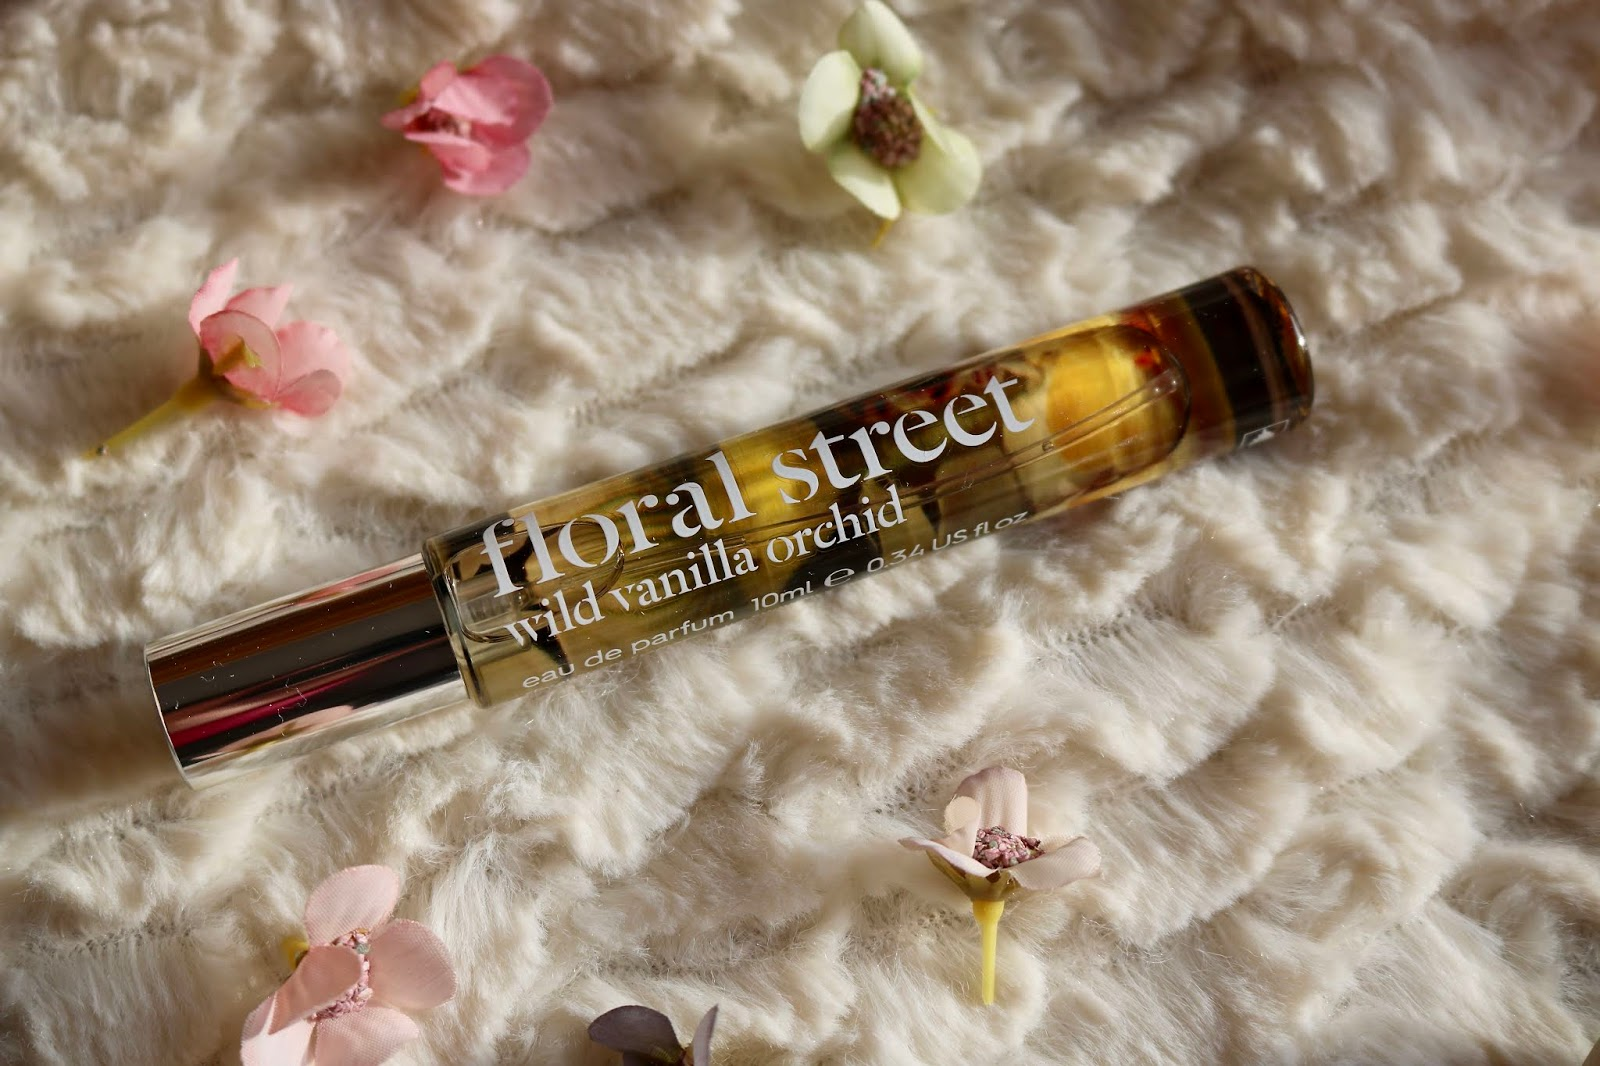 FLORAL STREET WILD VANILLA ORCHID FRAGRANCE 10ML